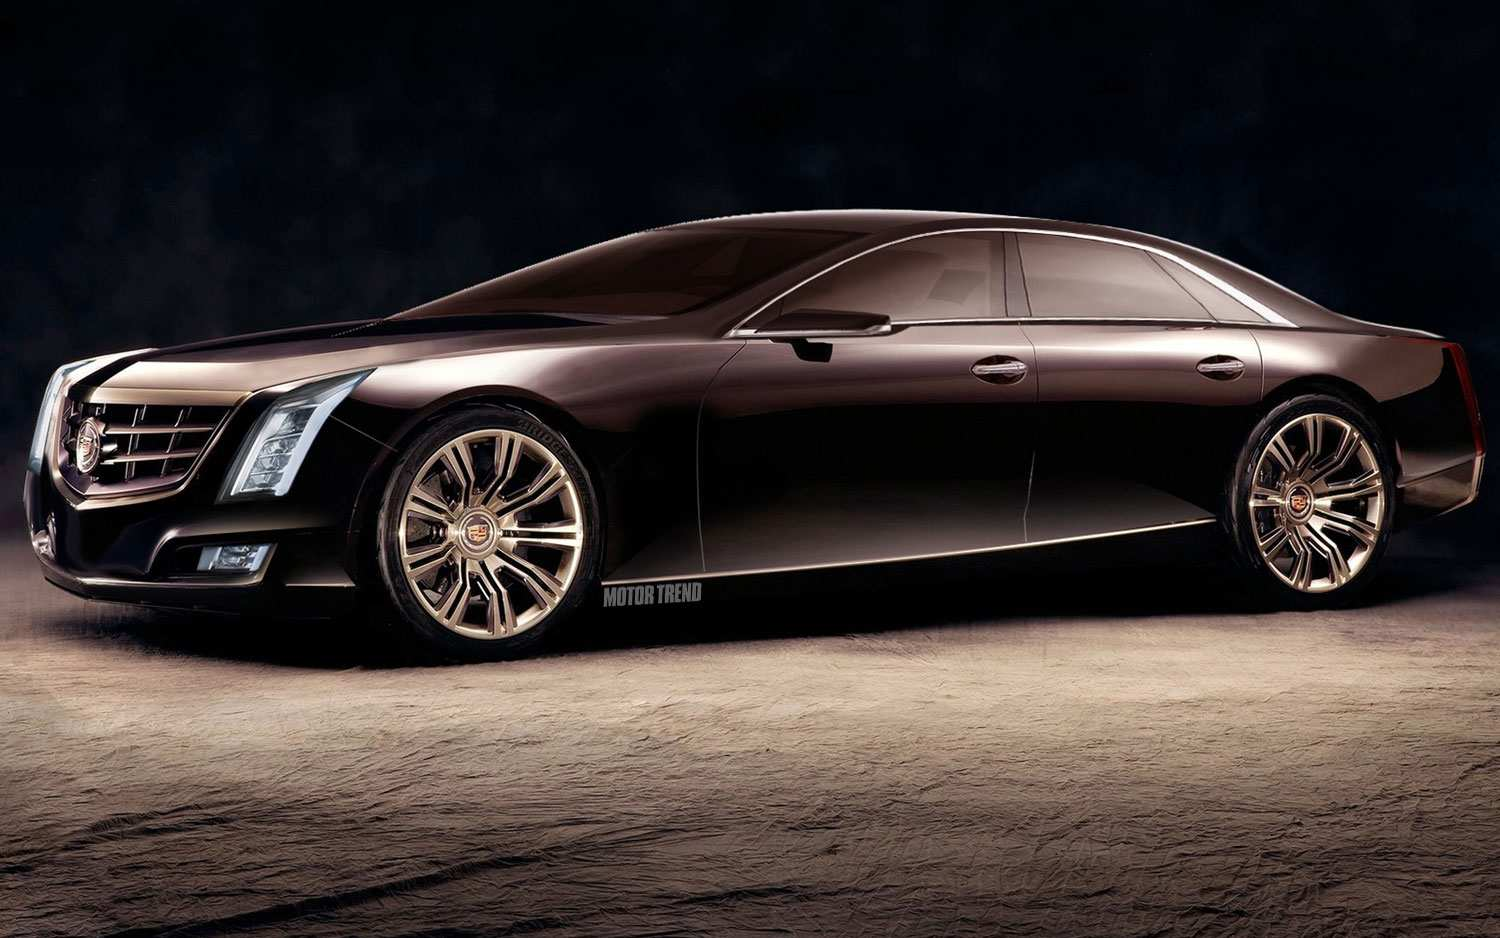 49 The Best Cadillac Ct9 2020 Prices